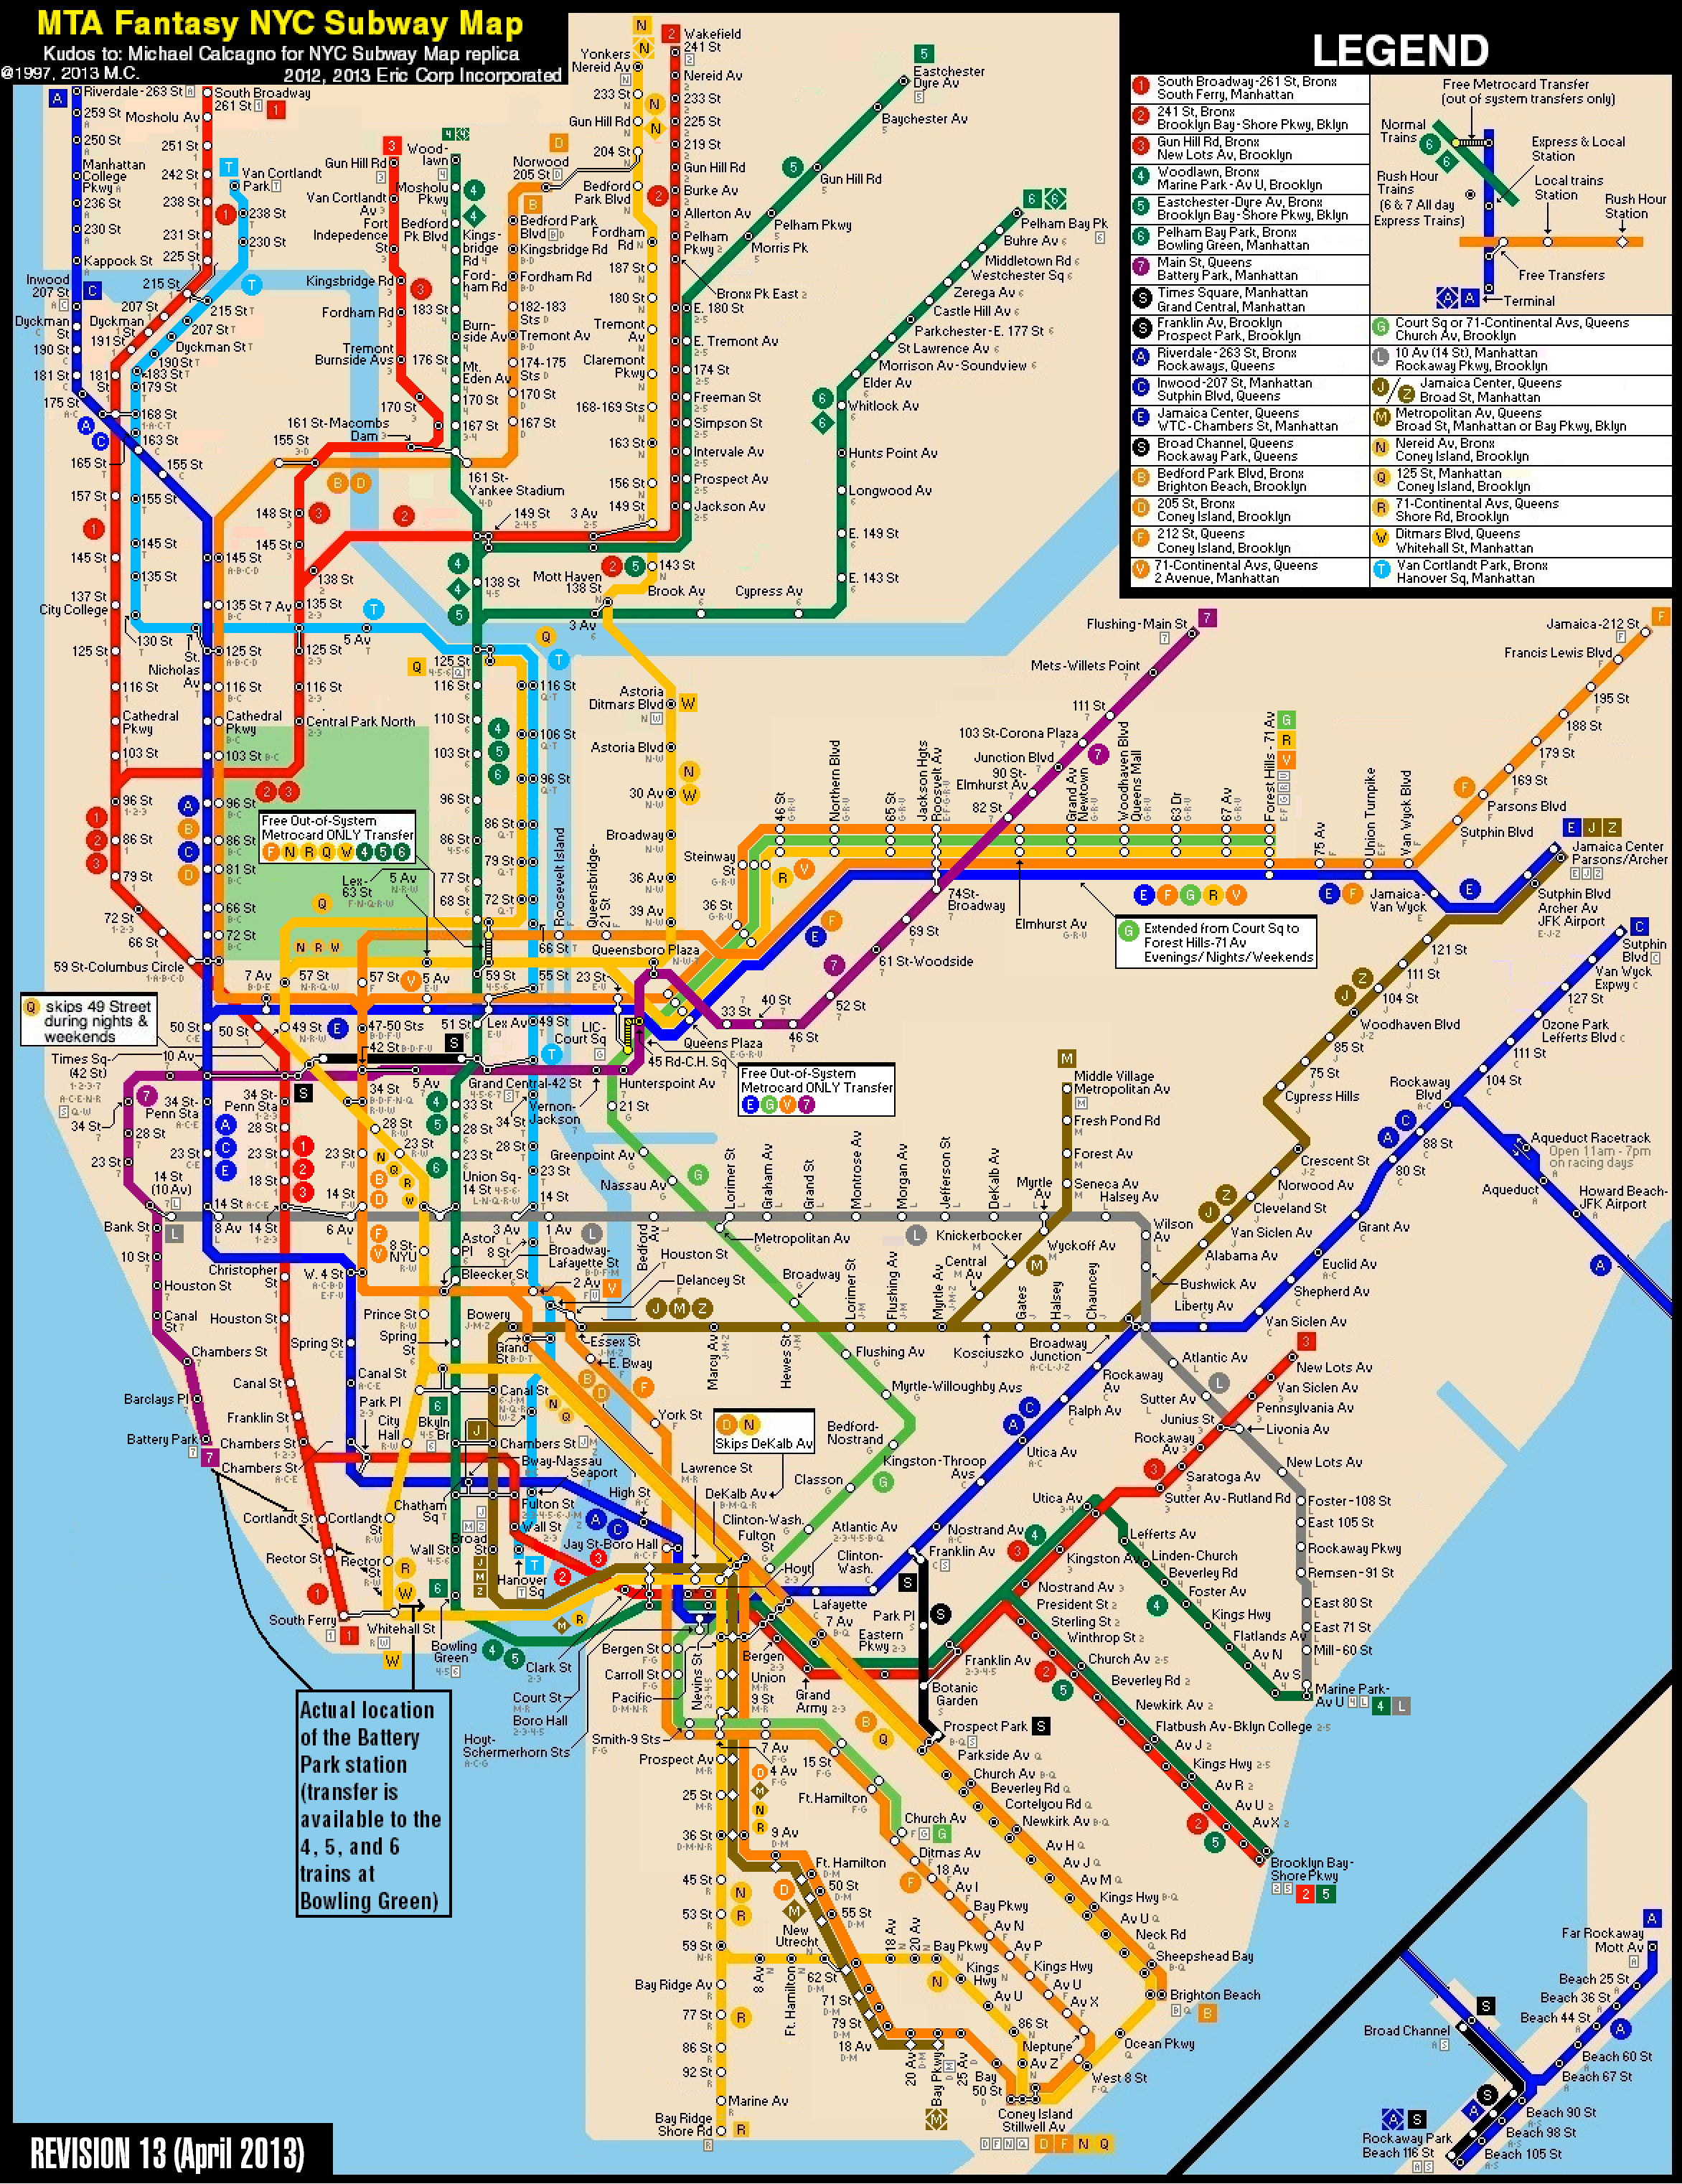 New York And Subway Map.New York Subway Map New York City Subway Fantasy Map Revision 13